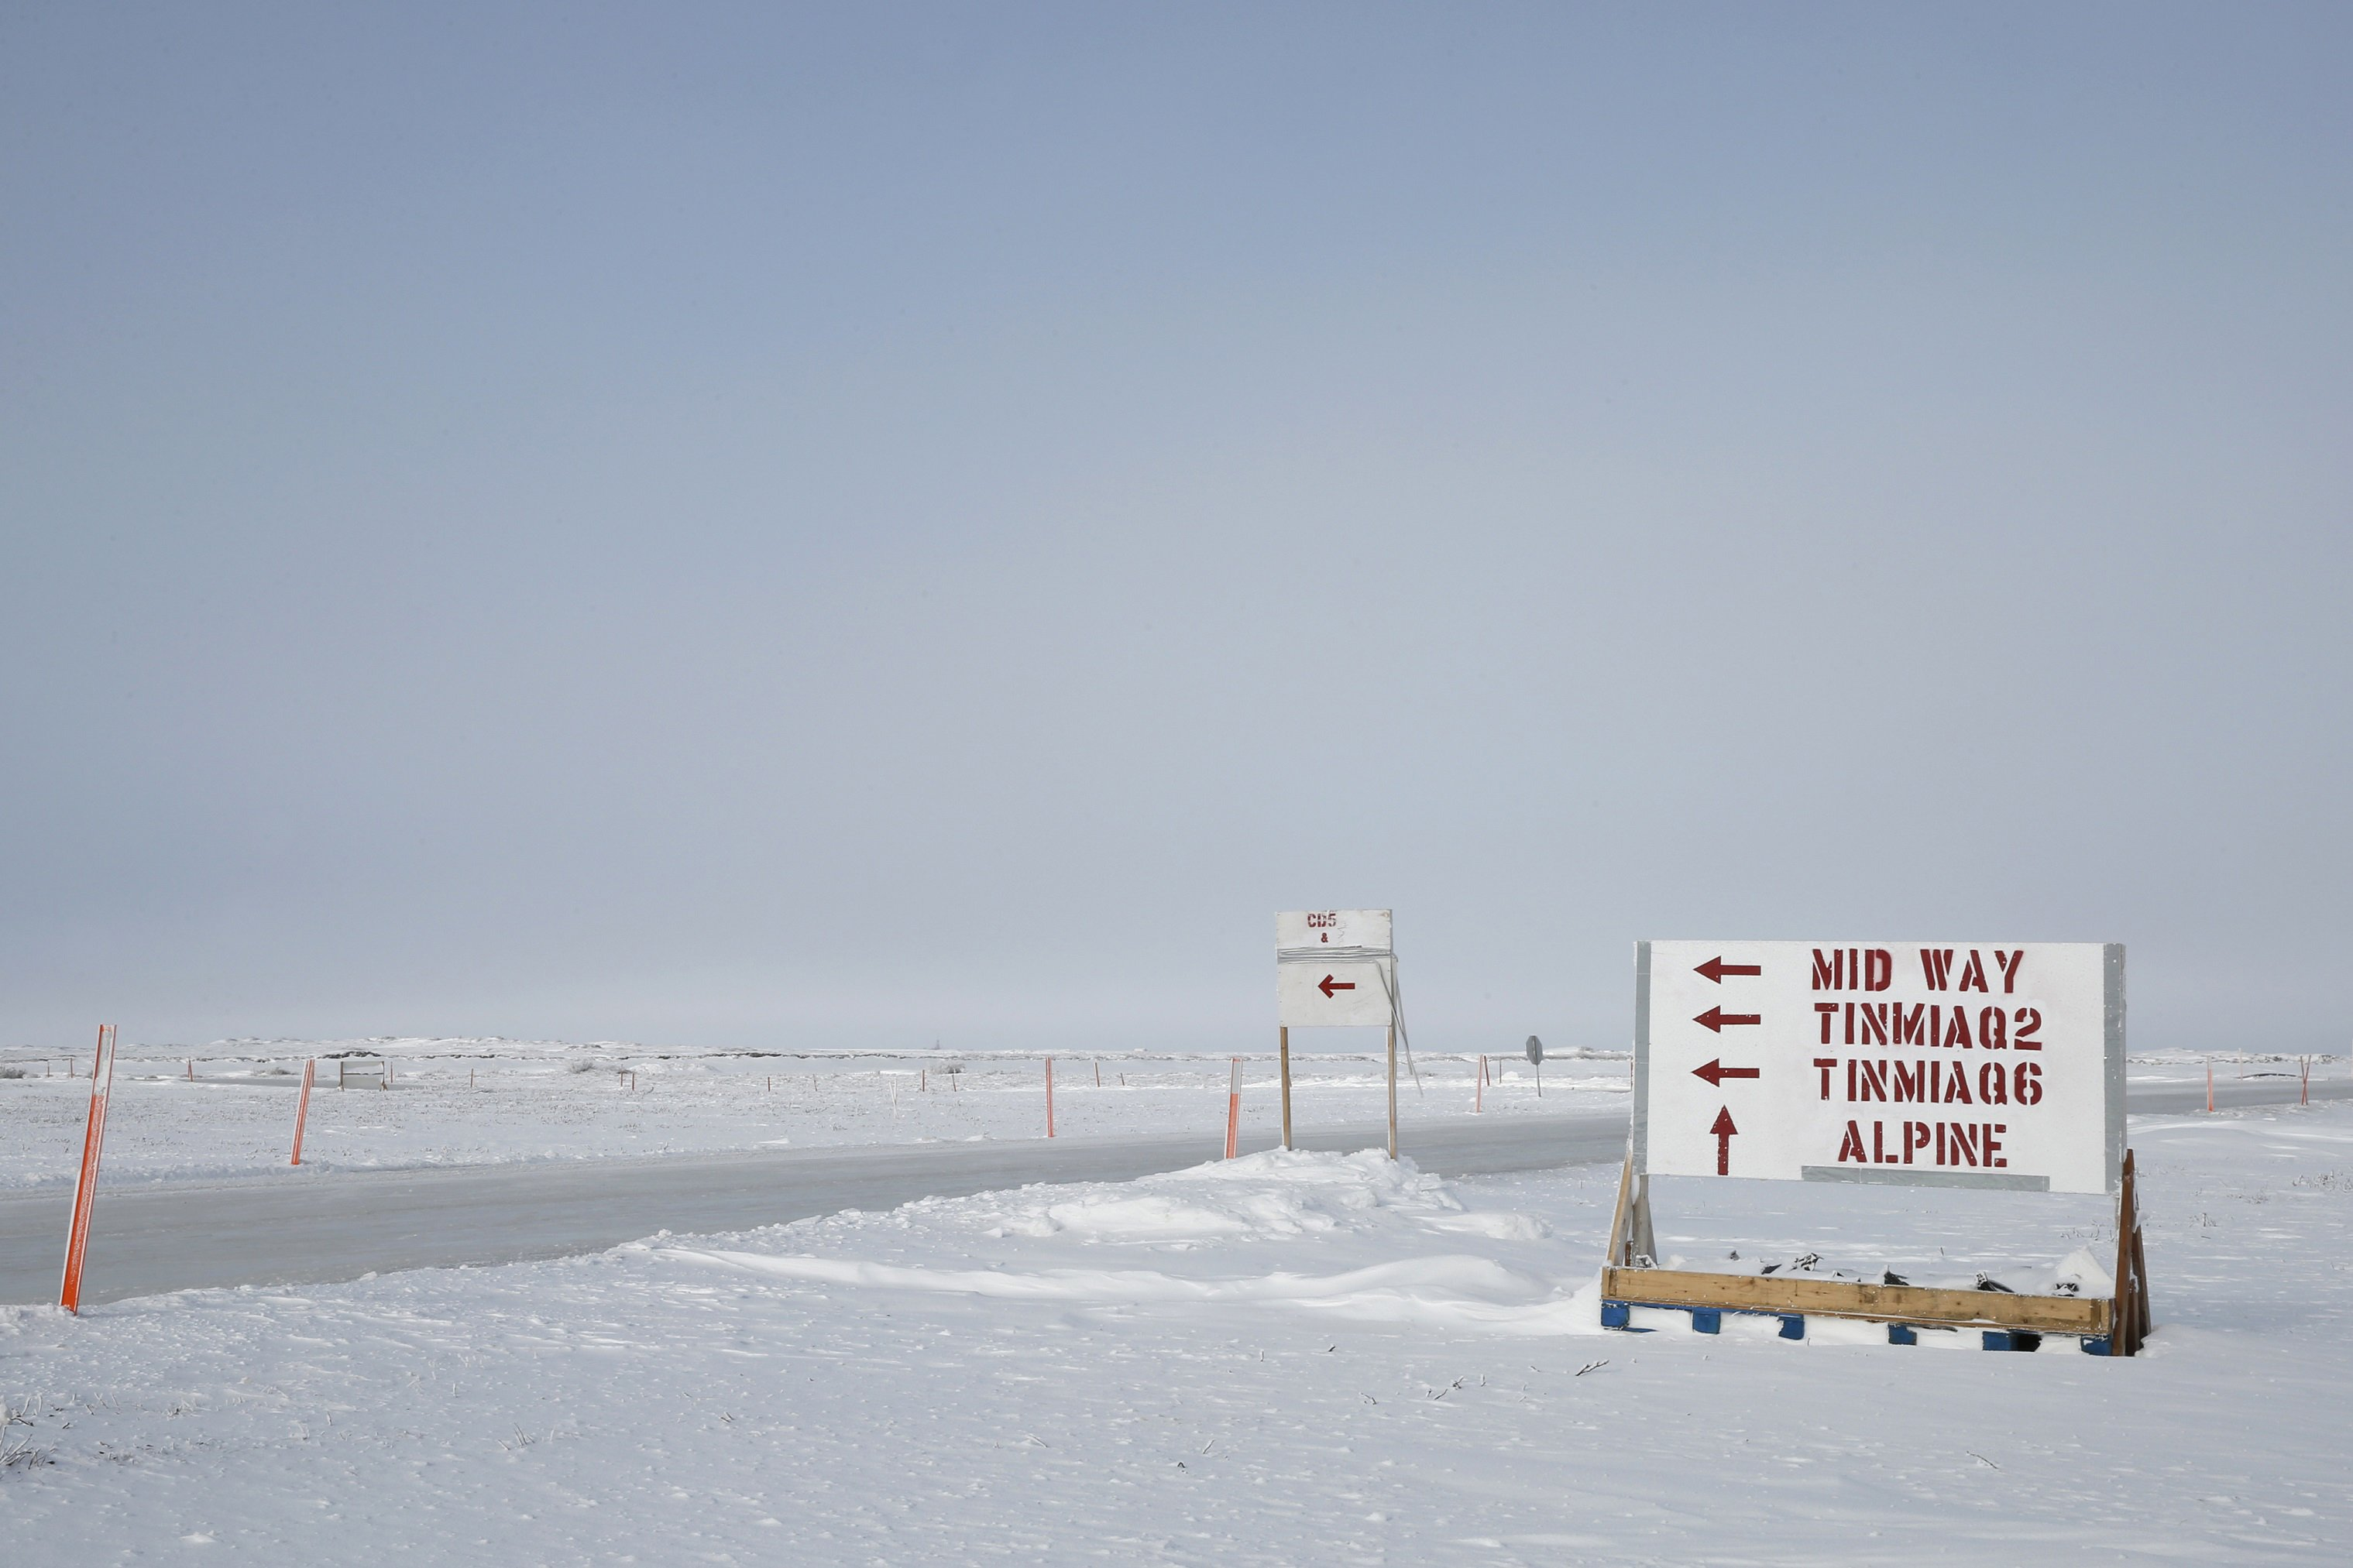 Changes to plans for a huge new Arctic Alaska oil project prompt more environmental review